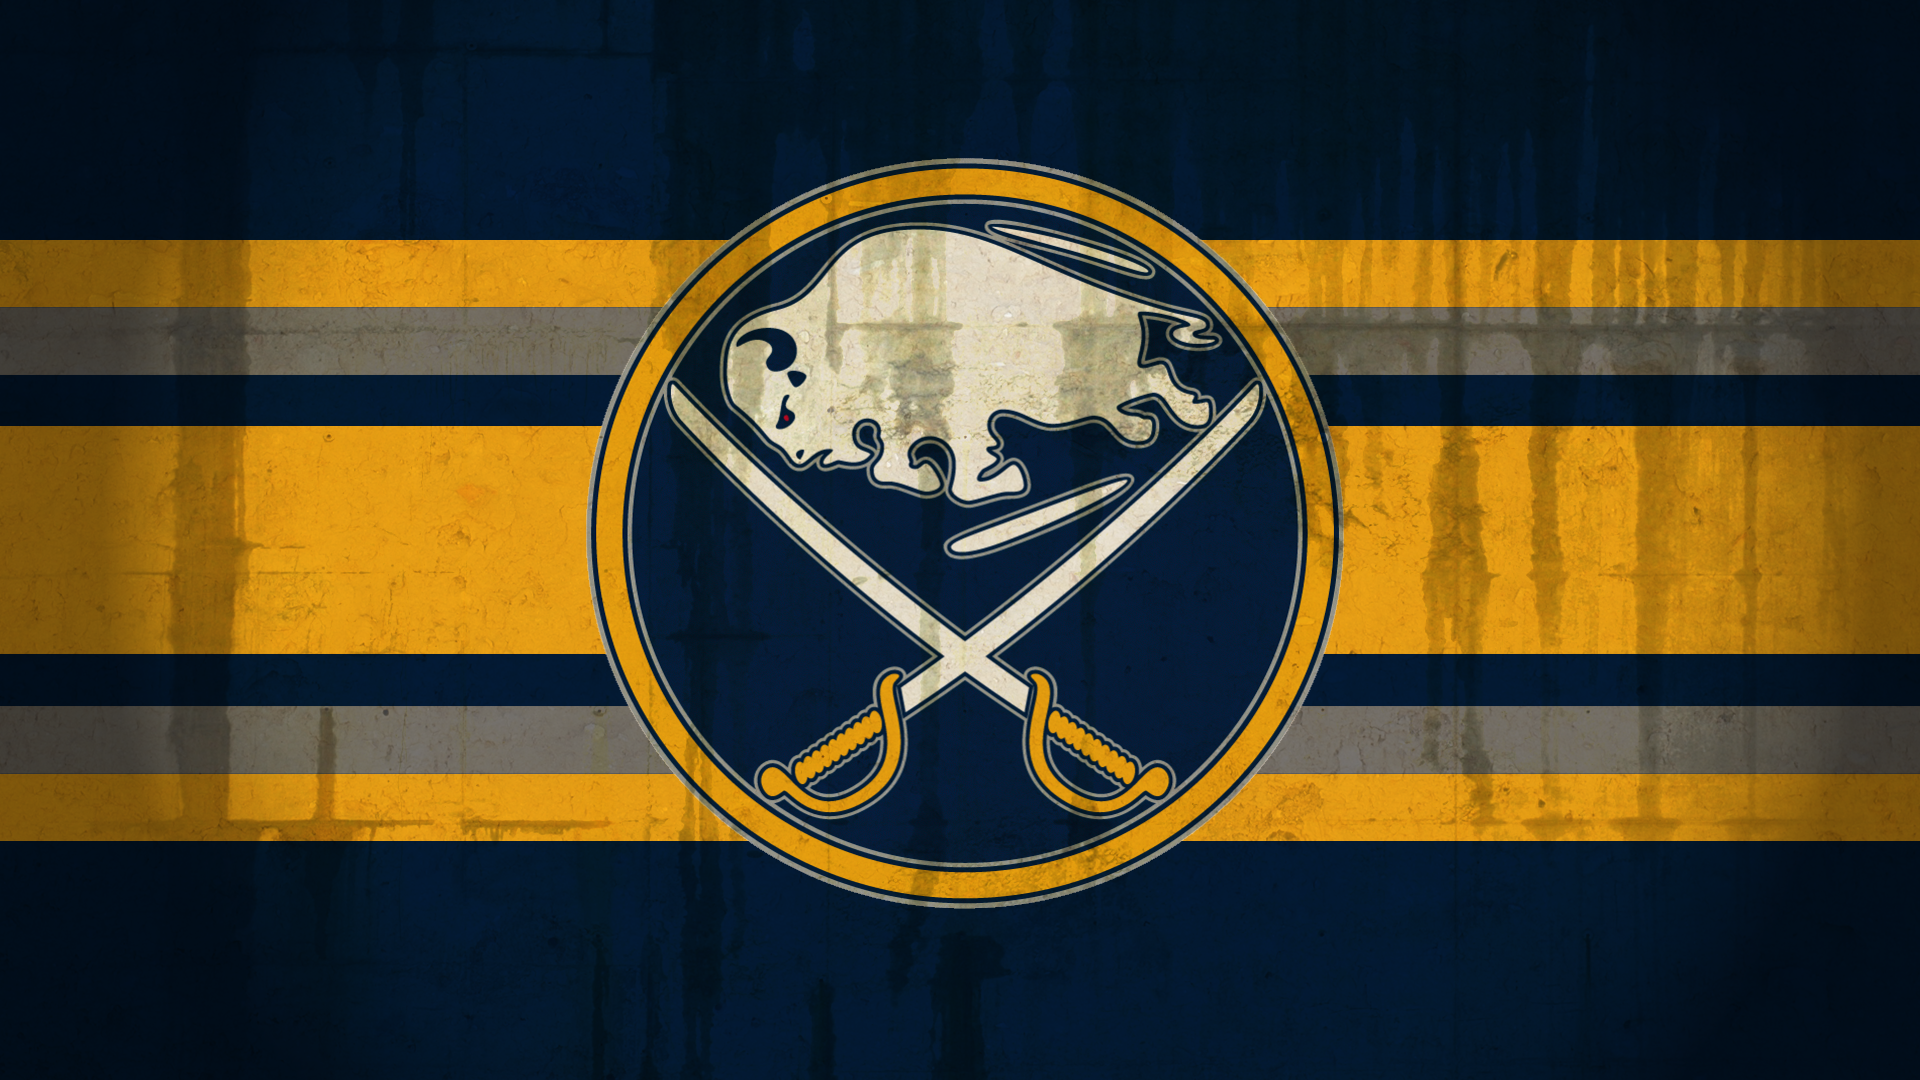 Buffalo Sabres HD Wallpaper Background Image 1920x1080 ID 1920x1080